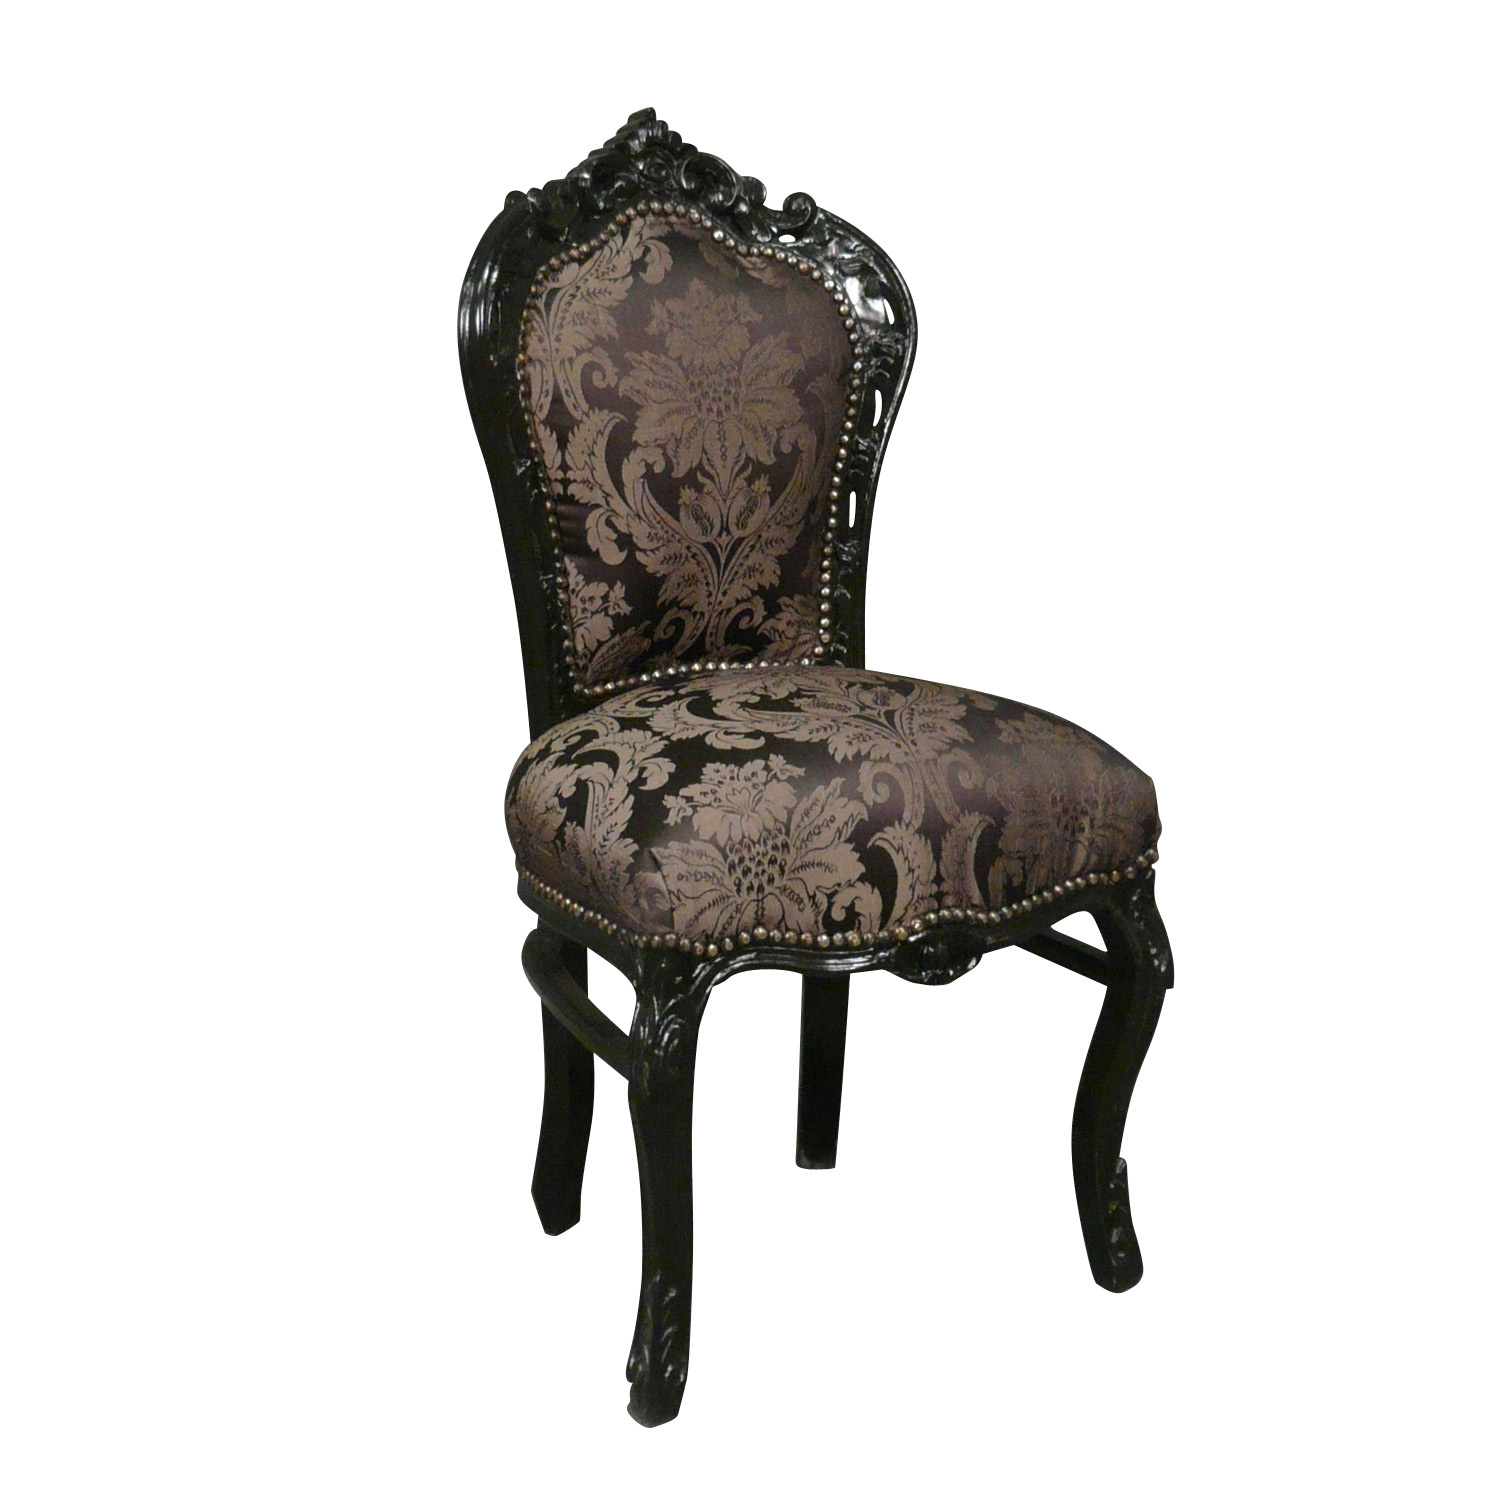 Chaise baroque galerie photo des chaises for Chaise baroque avec accoudoir